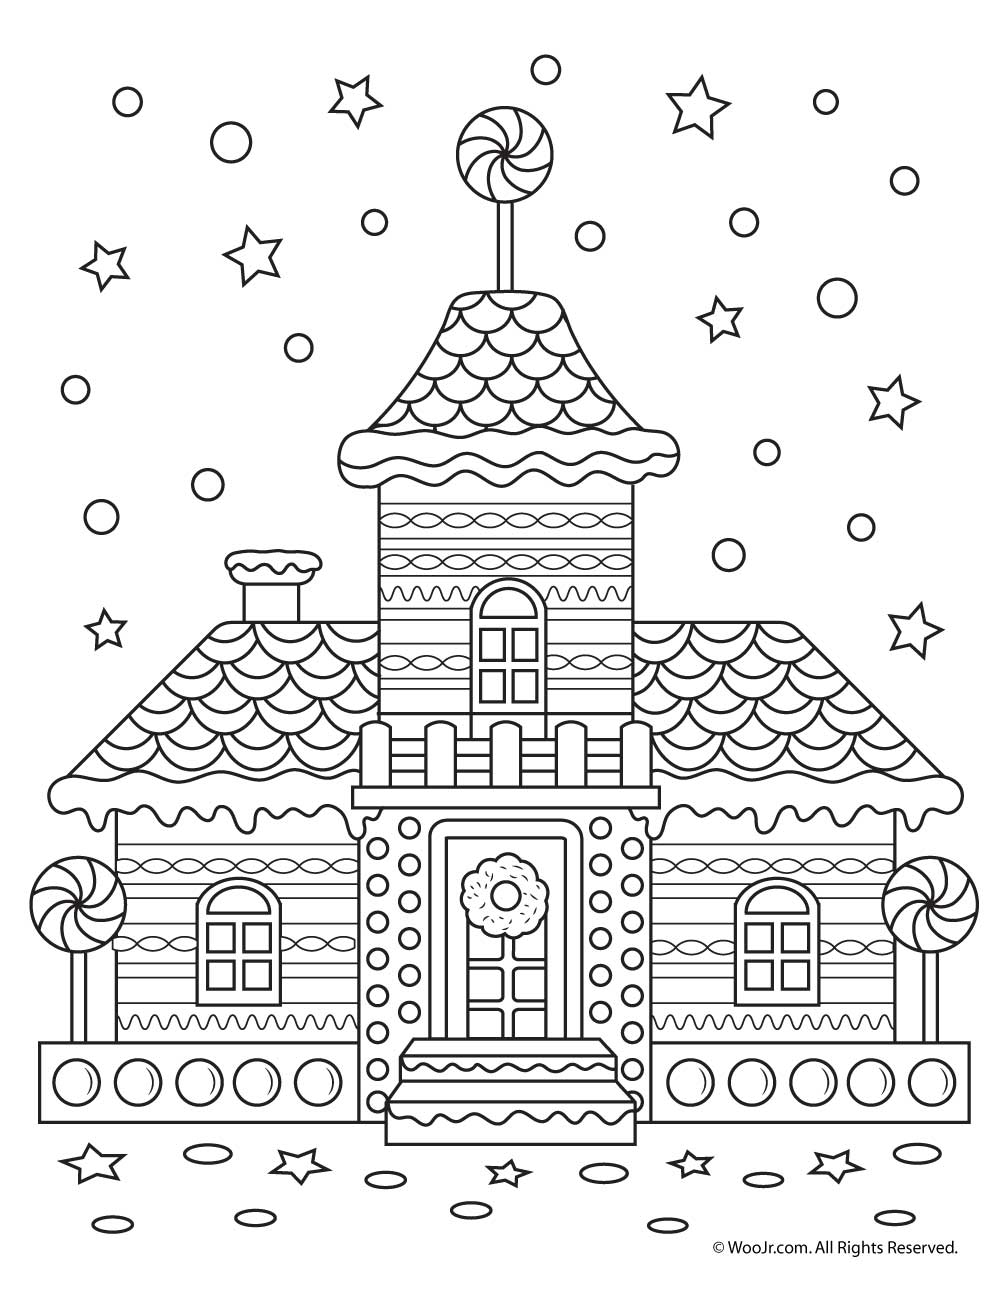 Gingerbread House Adult Coloring Page | Woo! Jr. Kids Activities